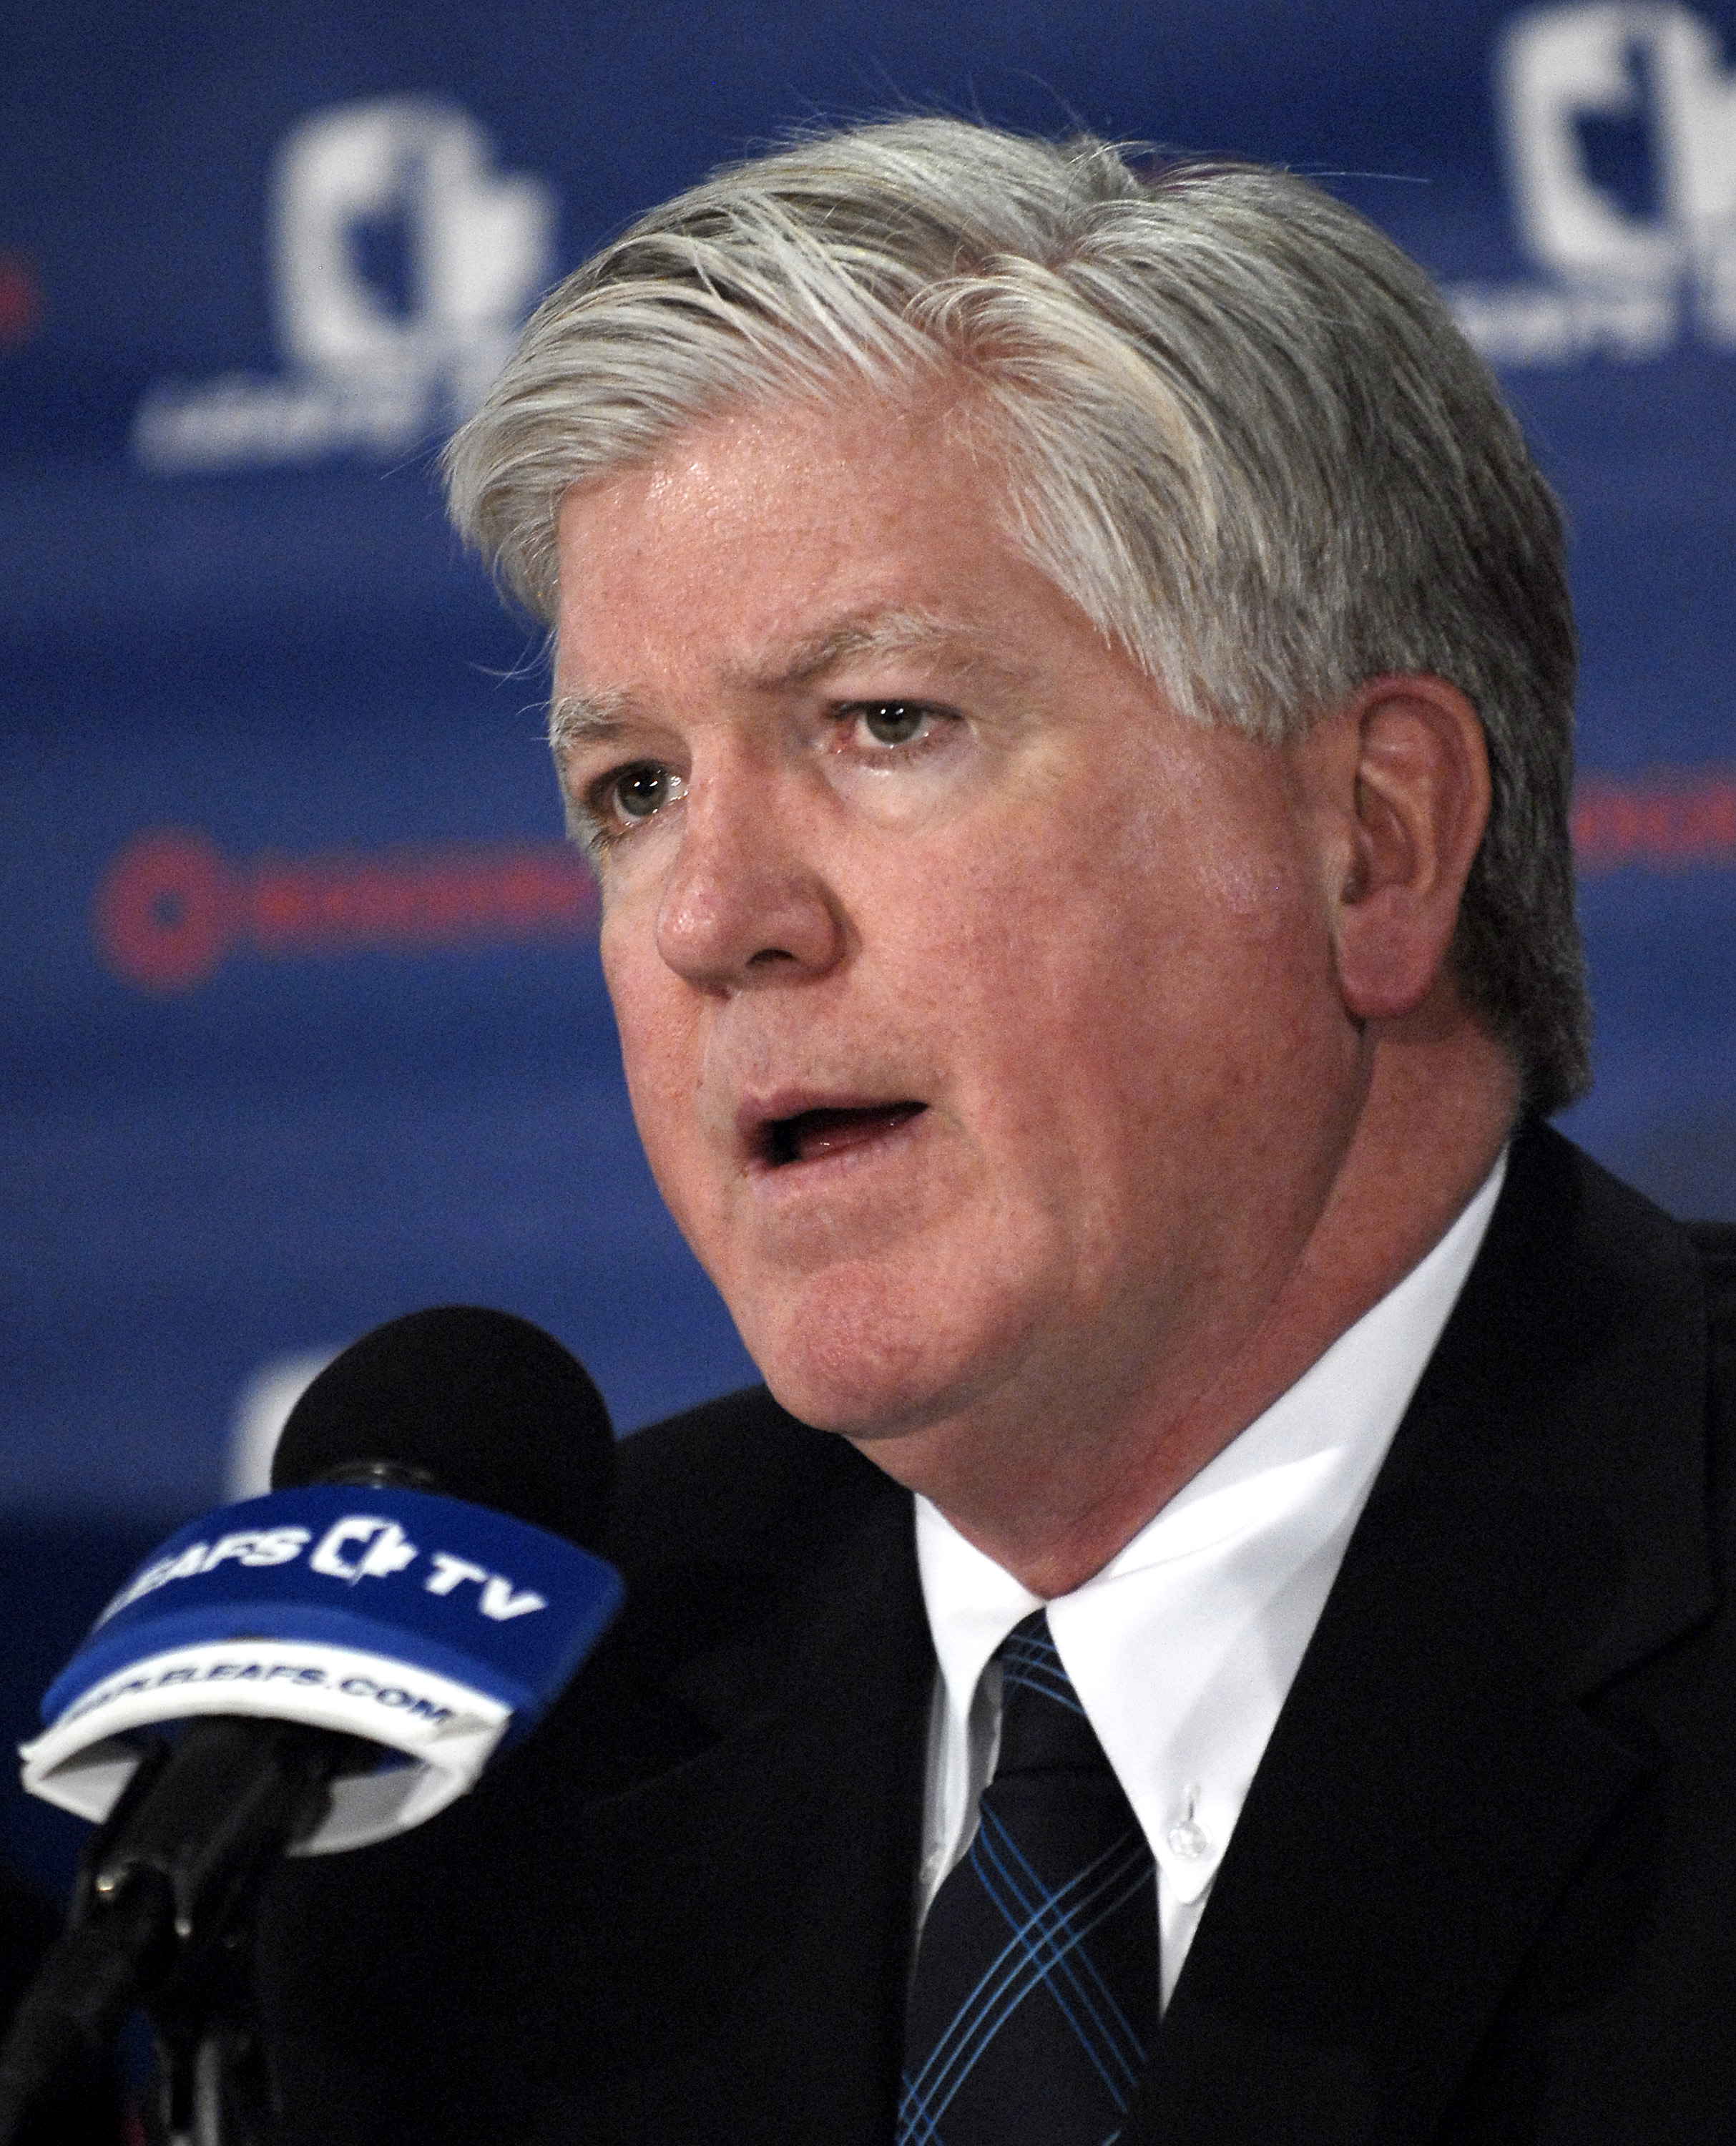 TORONTO - NOVEMBER 29:   Brian Burke speaks to the media after being named President and General Manger of the Toronto Maple Leafs November 29, 2008 at the Air Canada Centre in Toronto, Ontario, Canada. (Photo by Brad White/Getty Images)